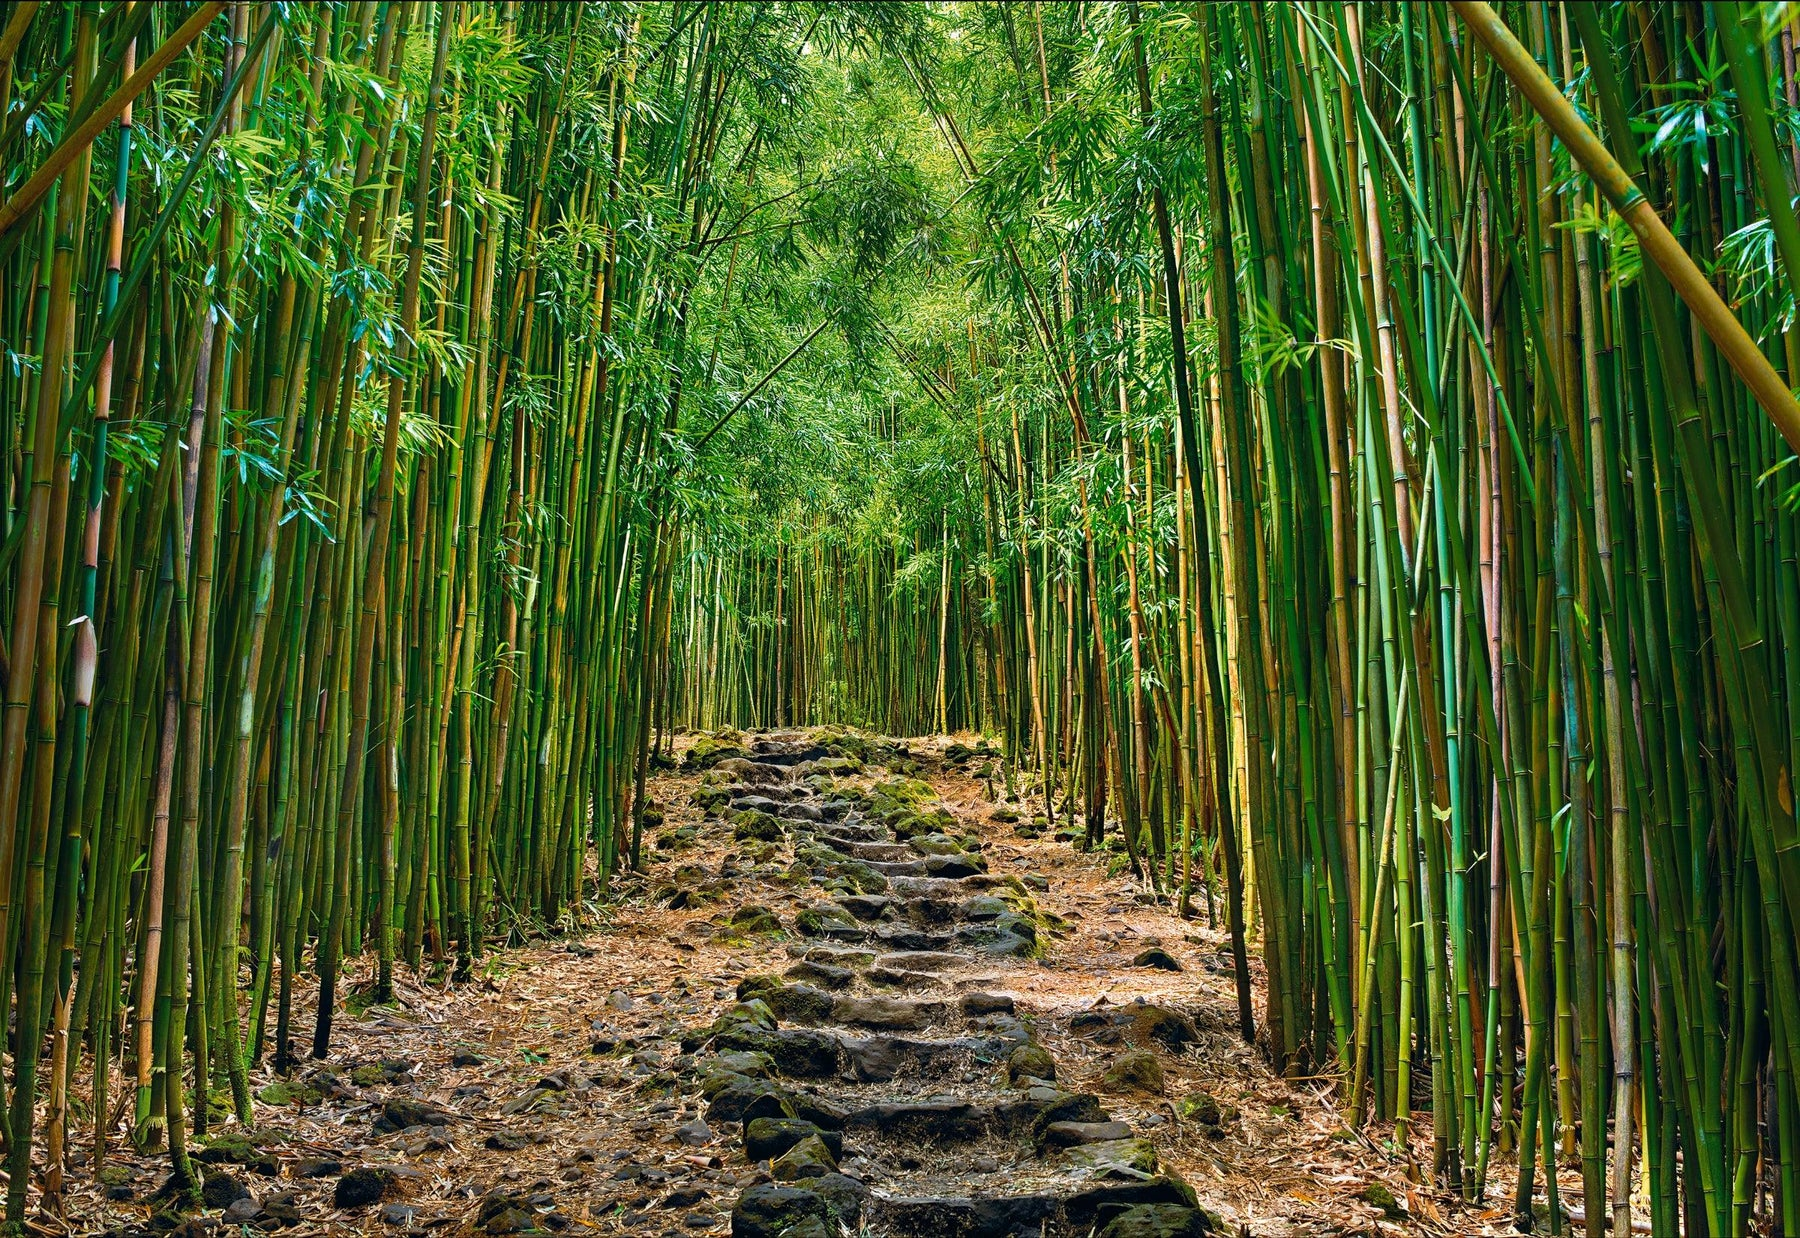 Rock pathway leading through a green bamboo forest in Hana Maui